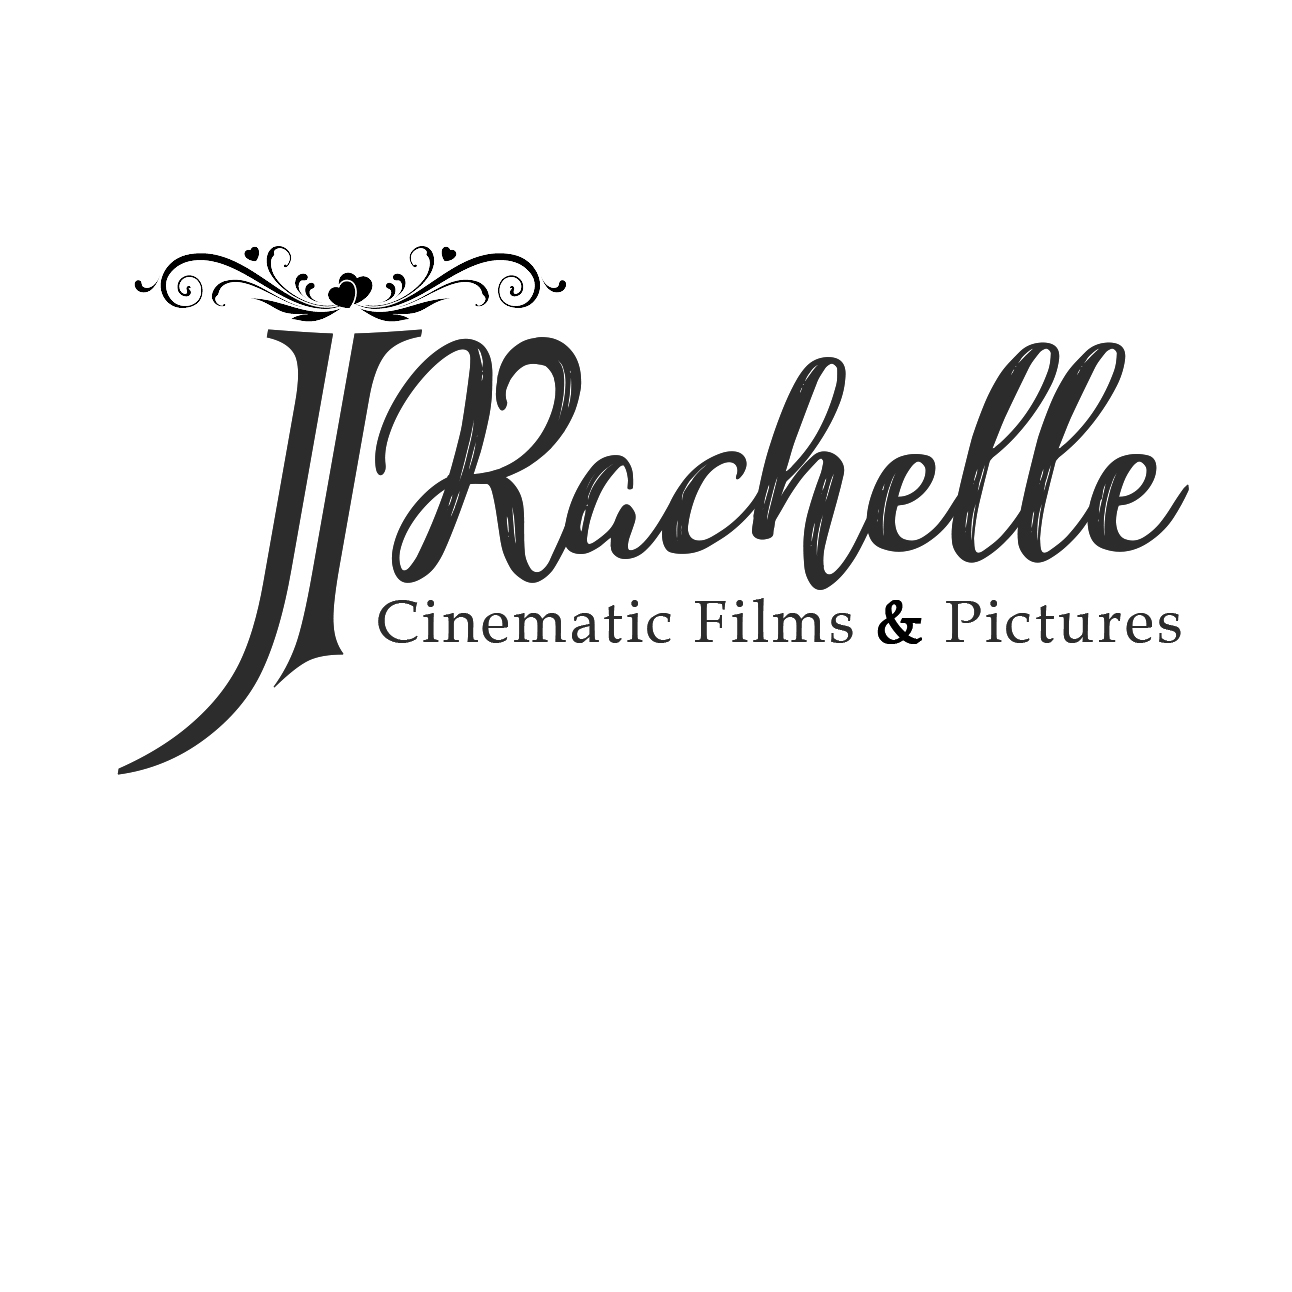 JRachelle Cinematic Films & Pictures